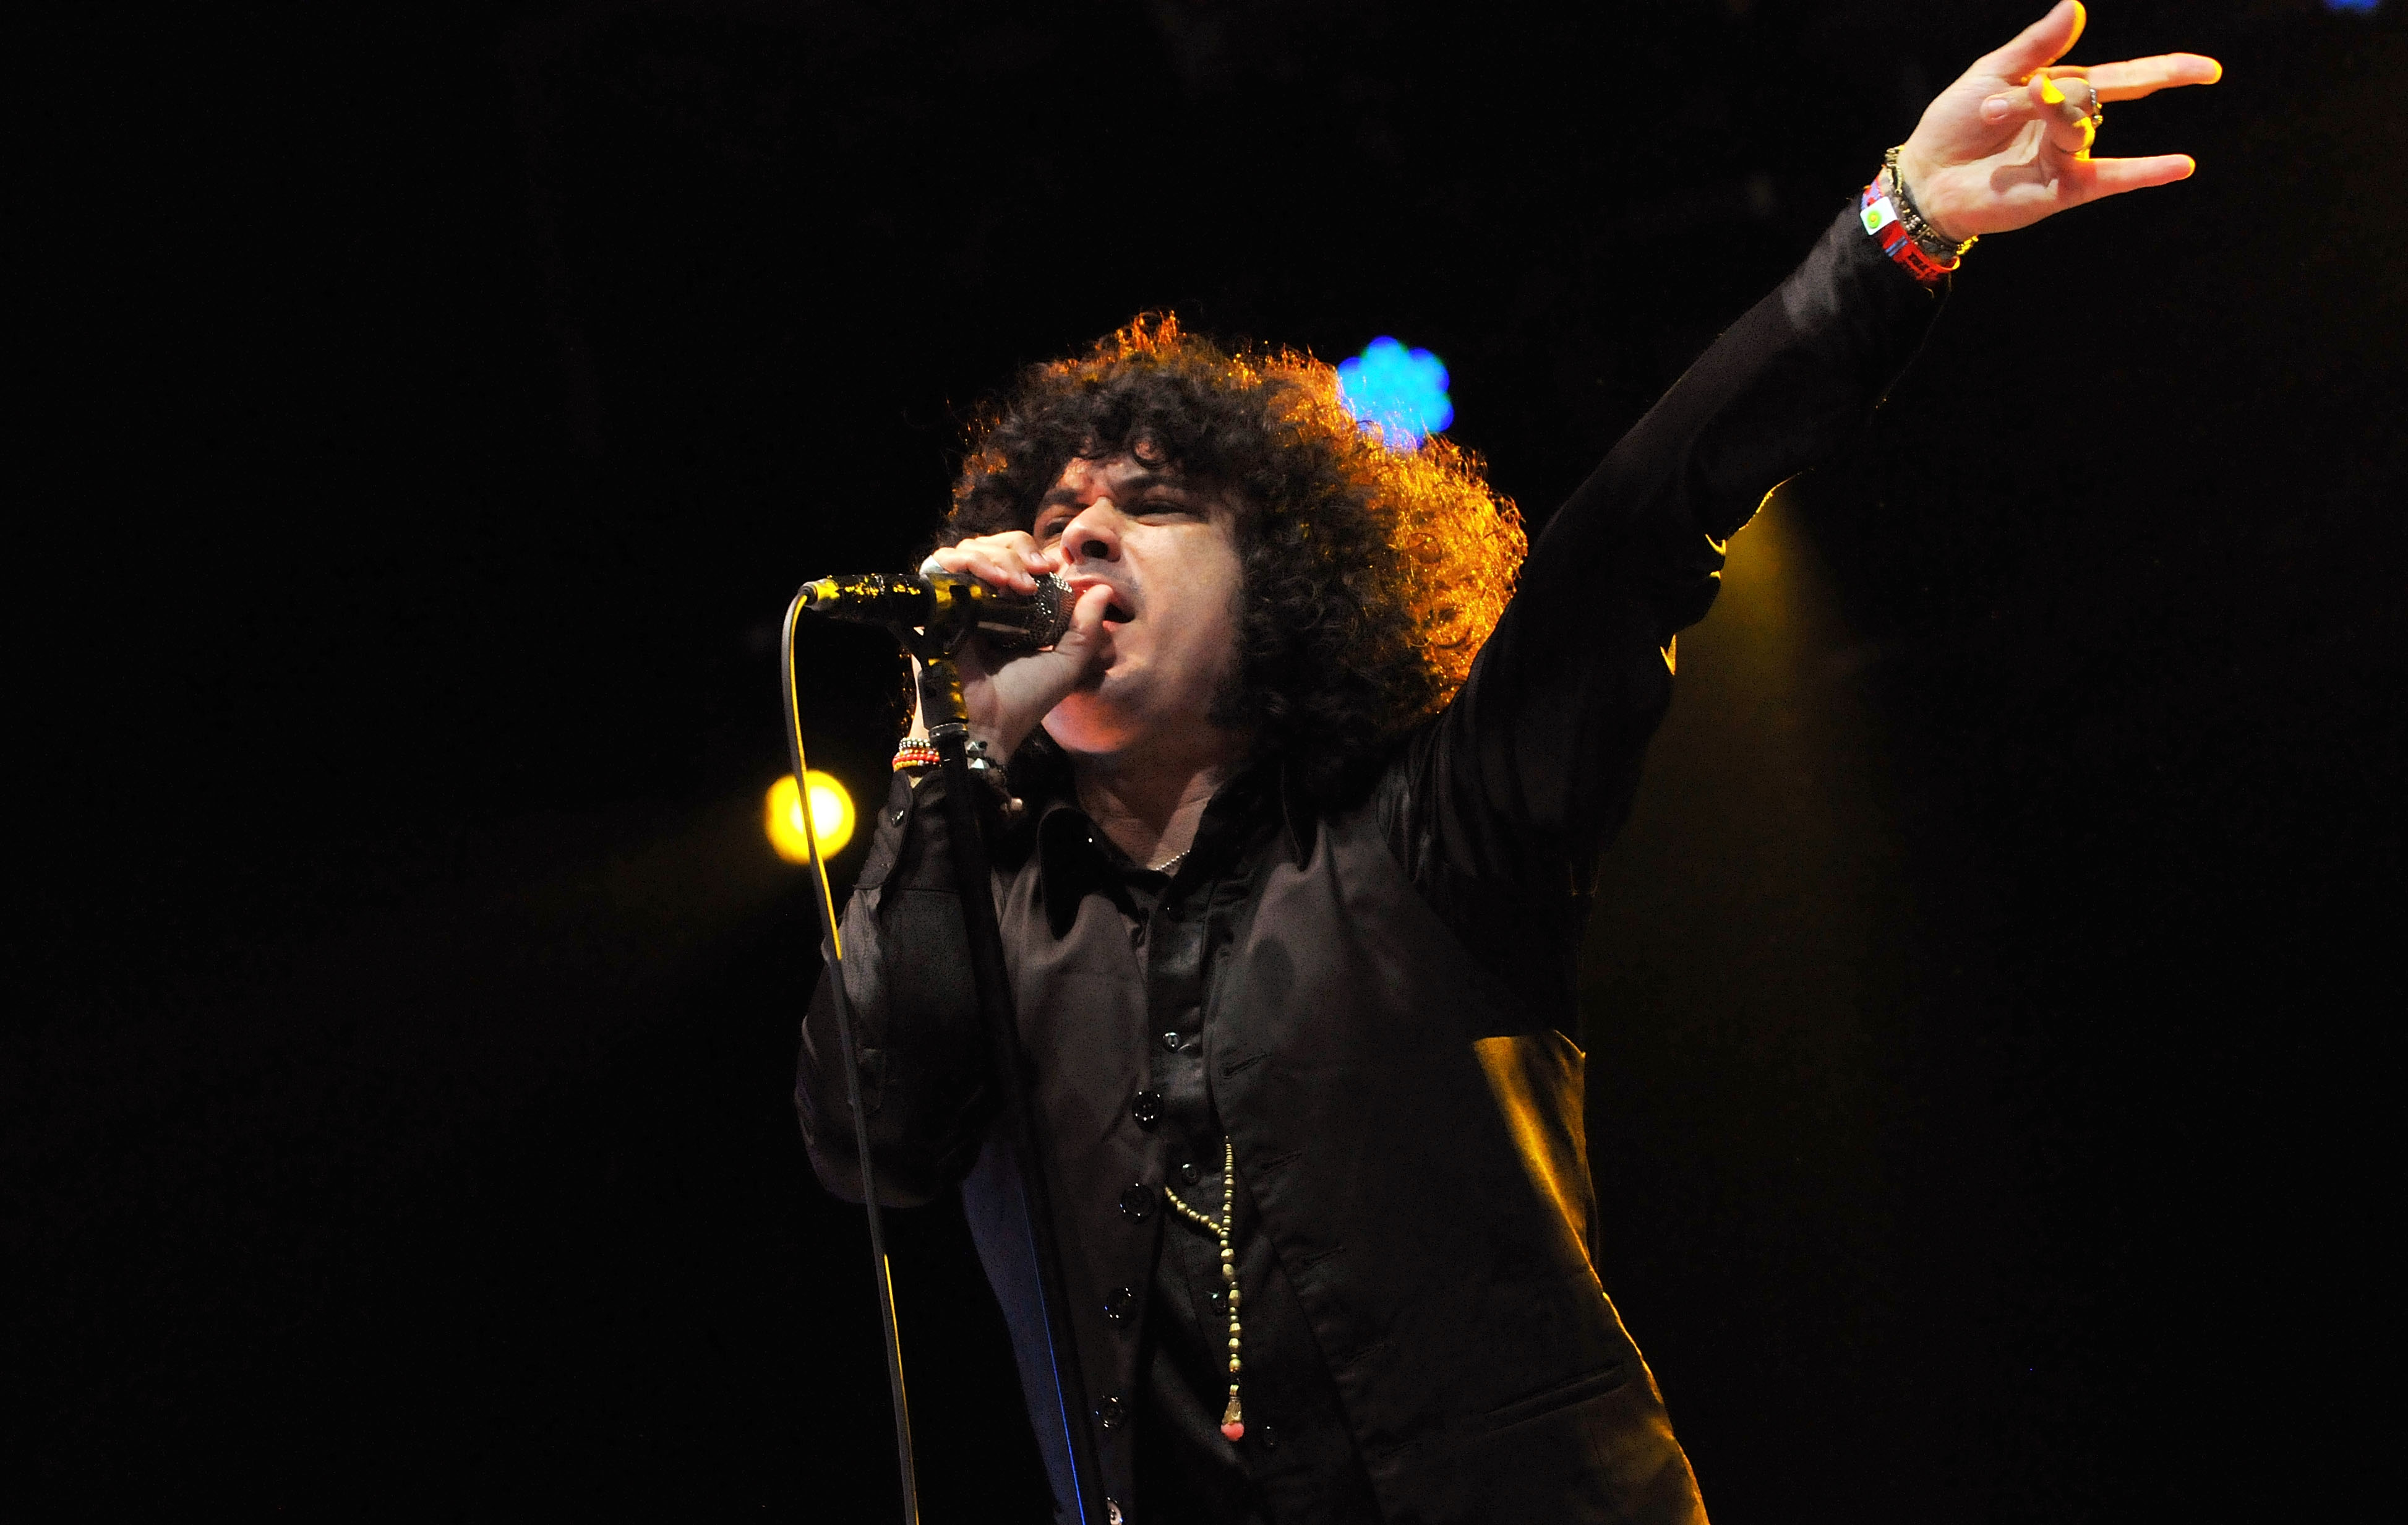 Cedric Bixler-Zavala Reacts to Beto's Loss: You Made Them Tremble With the Prospect of Change